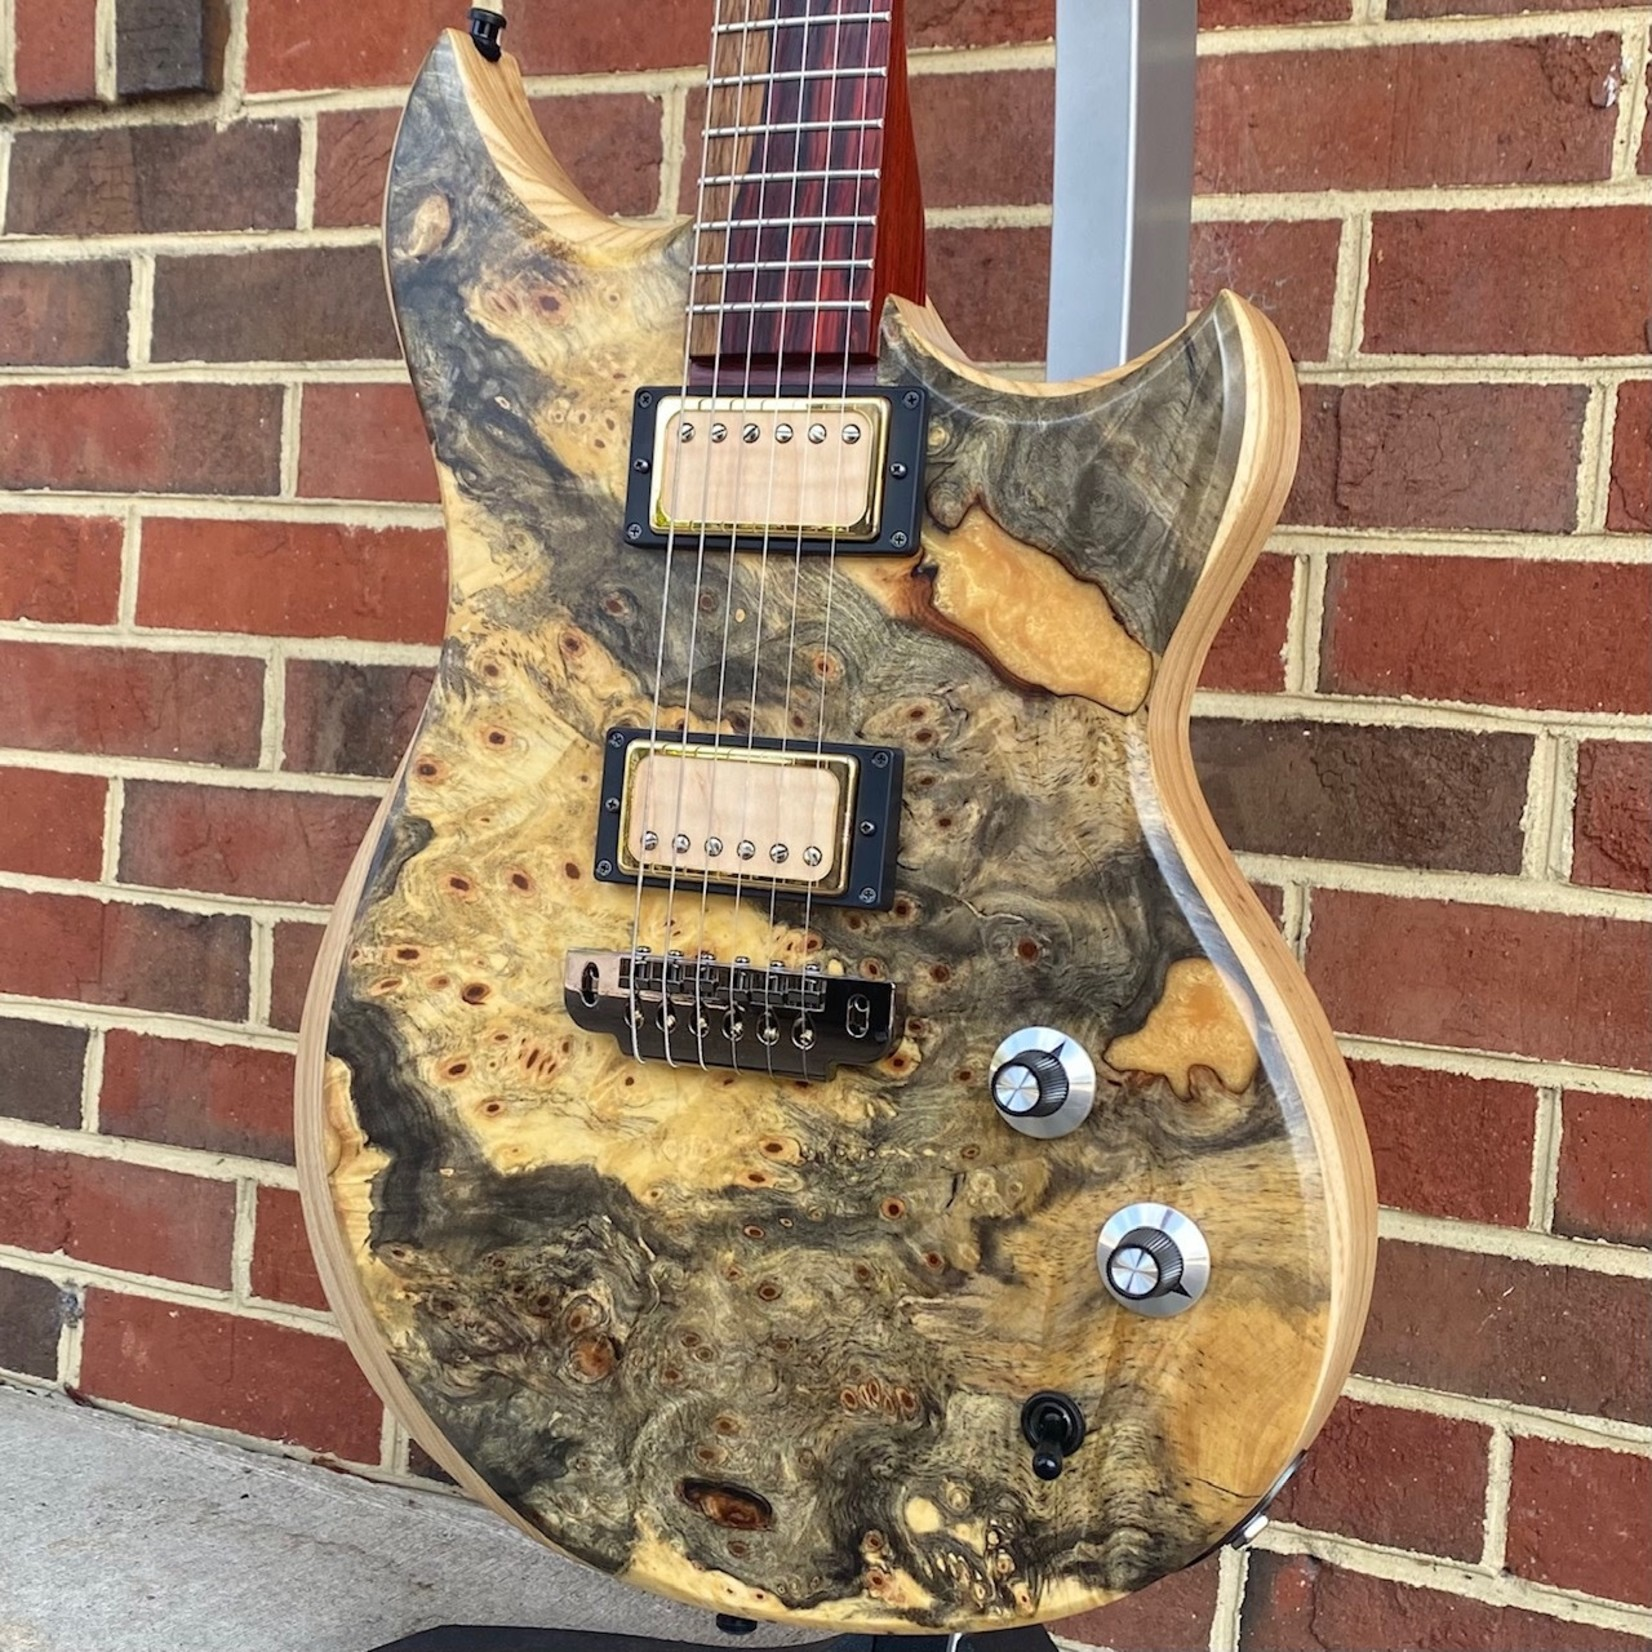 Dunable Guitars Dunable Guitars USA Special Stash #3 - Cyclops, One Piece Buckeye Burl Top w/ Gold Sparkle Resin Fill, Swamp Ash Body, Cocobolo Neck, Cocobolo Fretboard, Hardshell Case